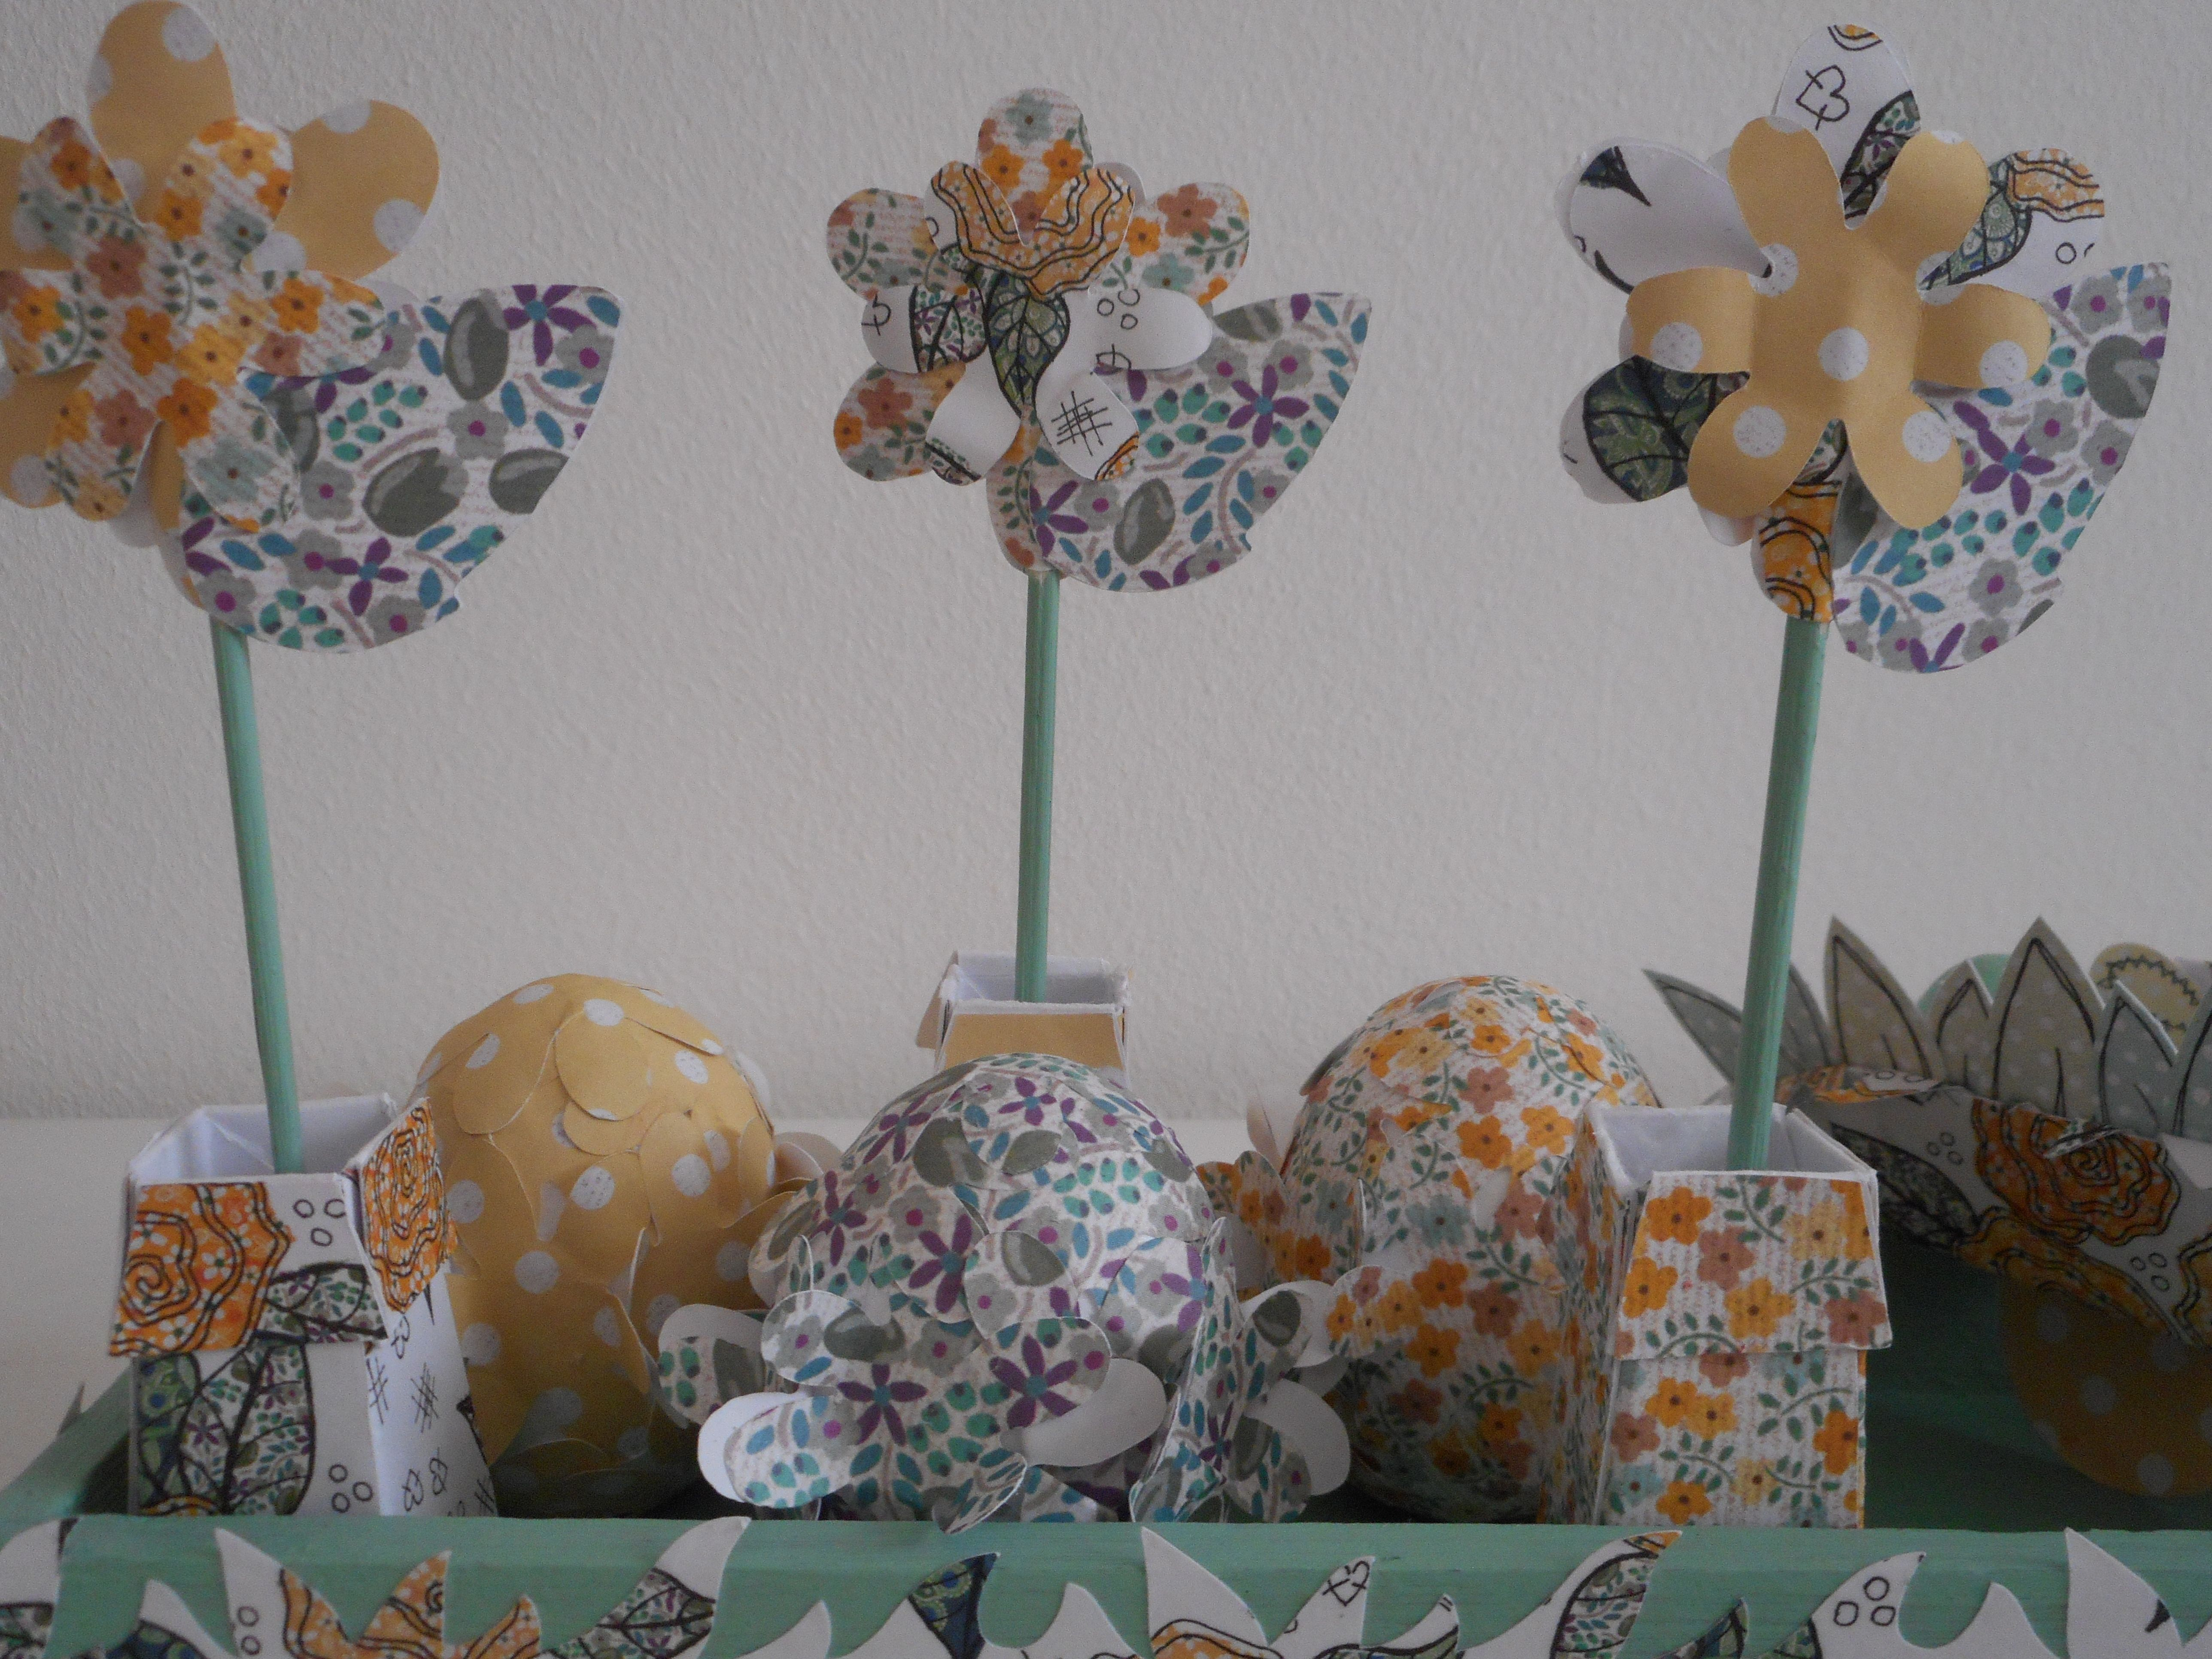 Detail Of Flowers In Decorative Easter Garden By Phillipa Lewis